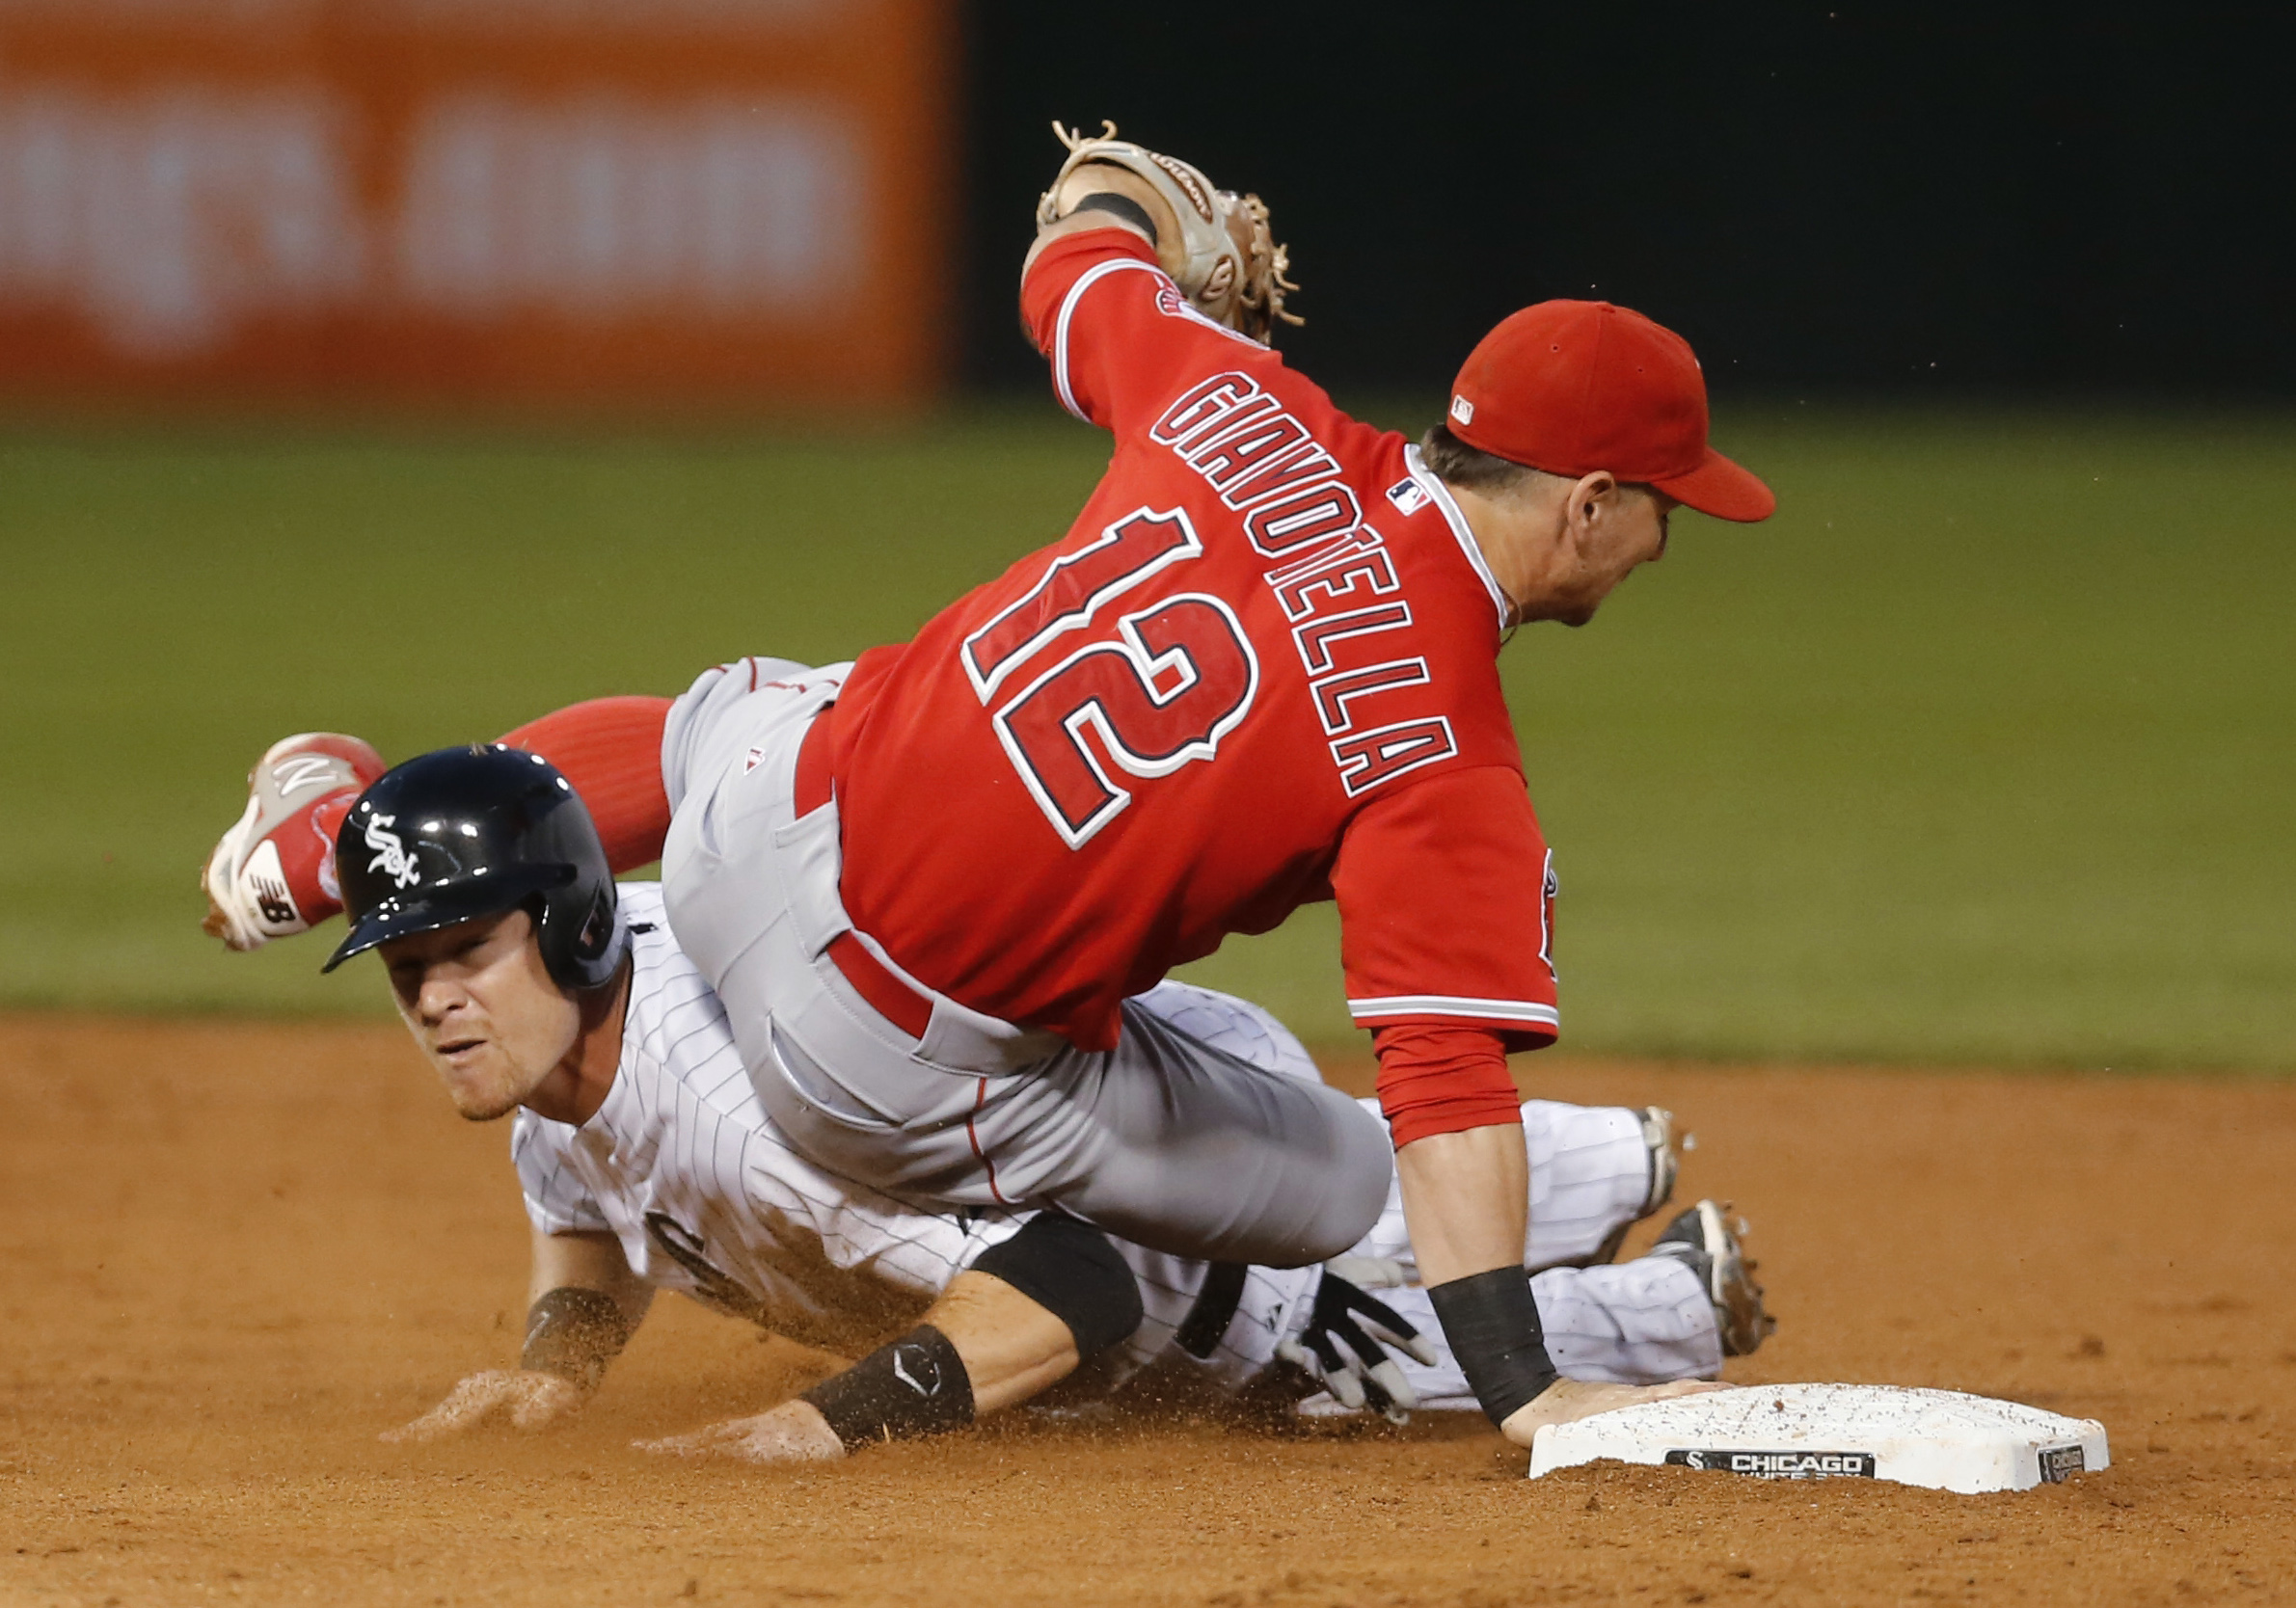 Los Angeles Angels second baseman Johnny Giavotella (12) tumbles over Chicago White Sox's Gordon Beckham after throwing to first to complete a double play on Tyler Saladino during the third inning of a baseball game Wednesday, Aug. 12, 2015, in Chicago. (